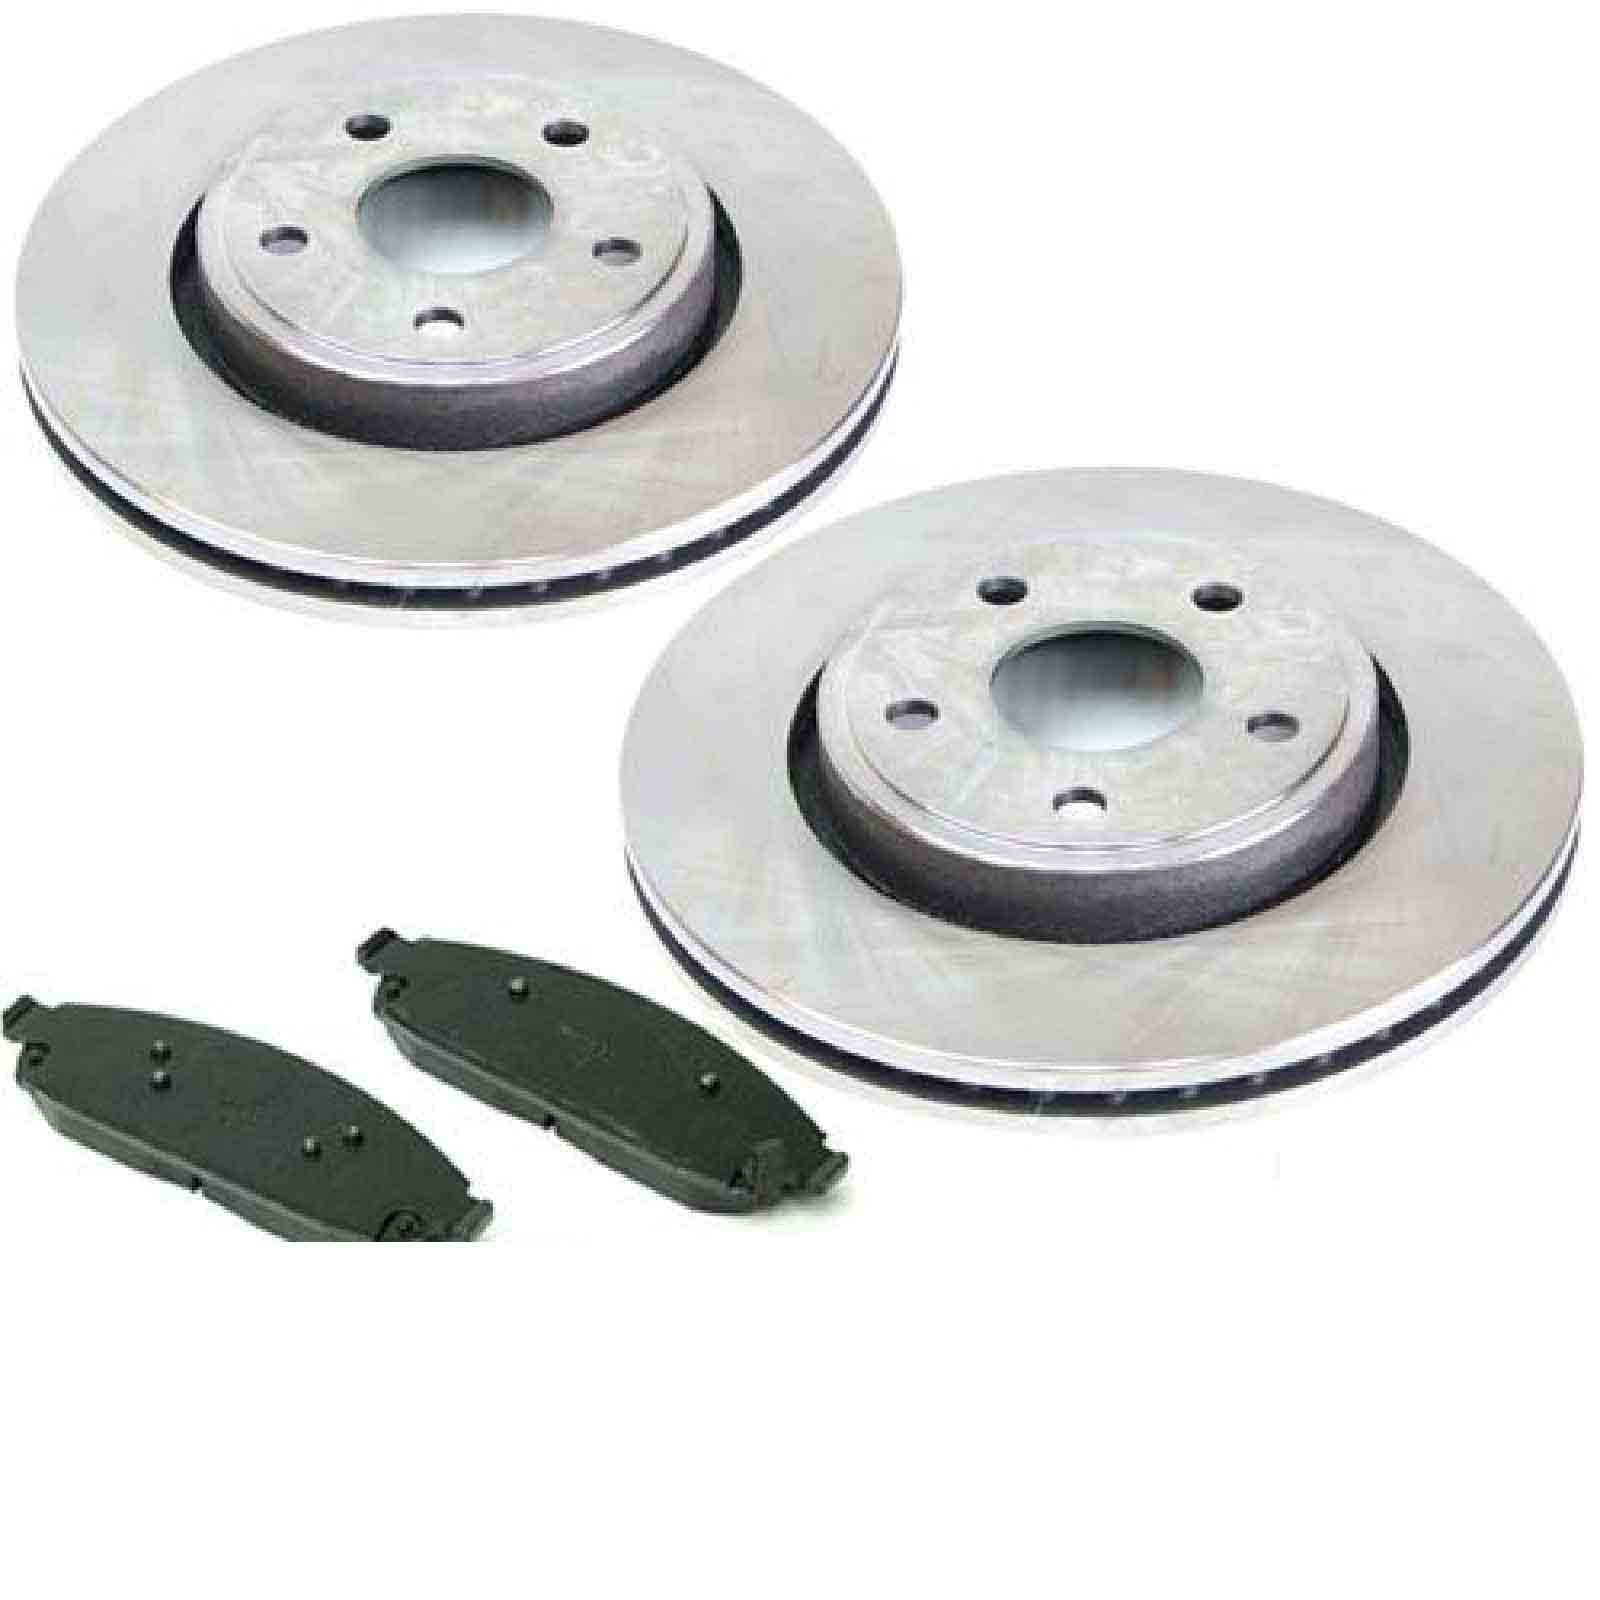 2 Dischi Freno Pastiglie Dei Freni Brake Discs Va Jeep Commander Type Dal 06 -